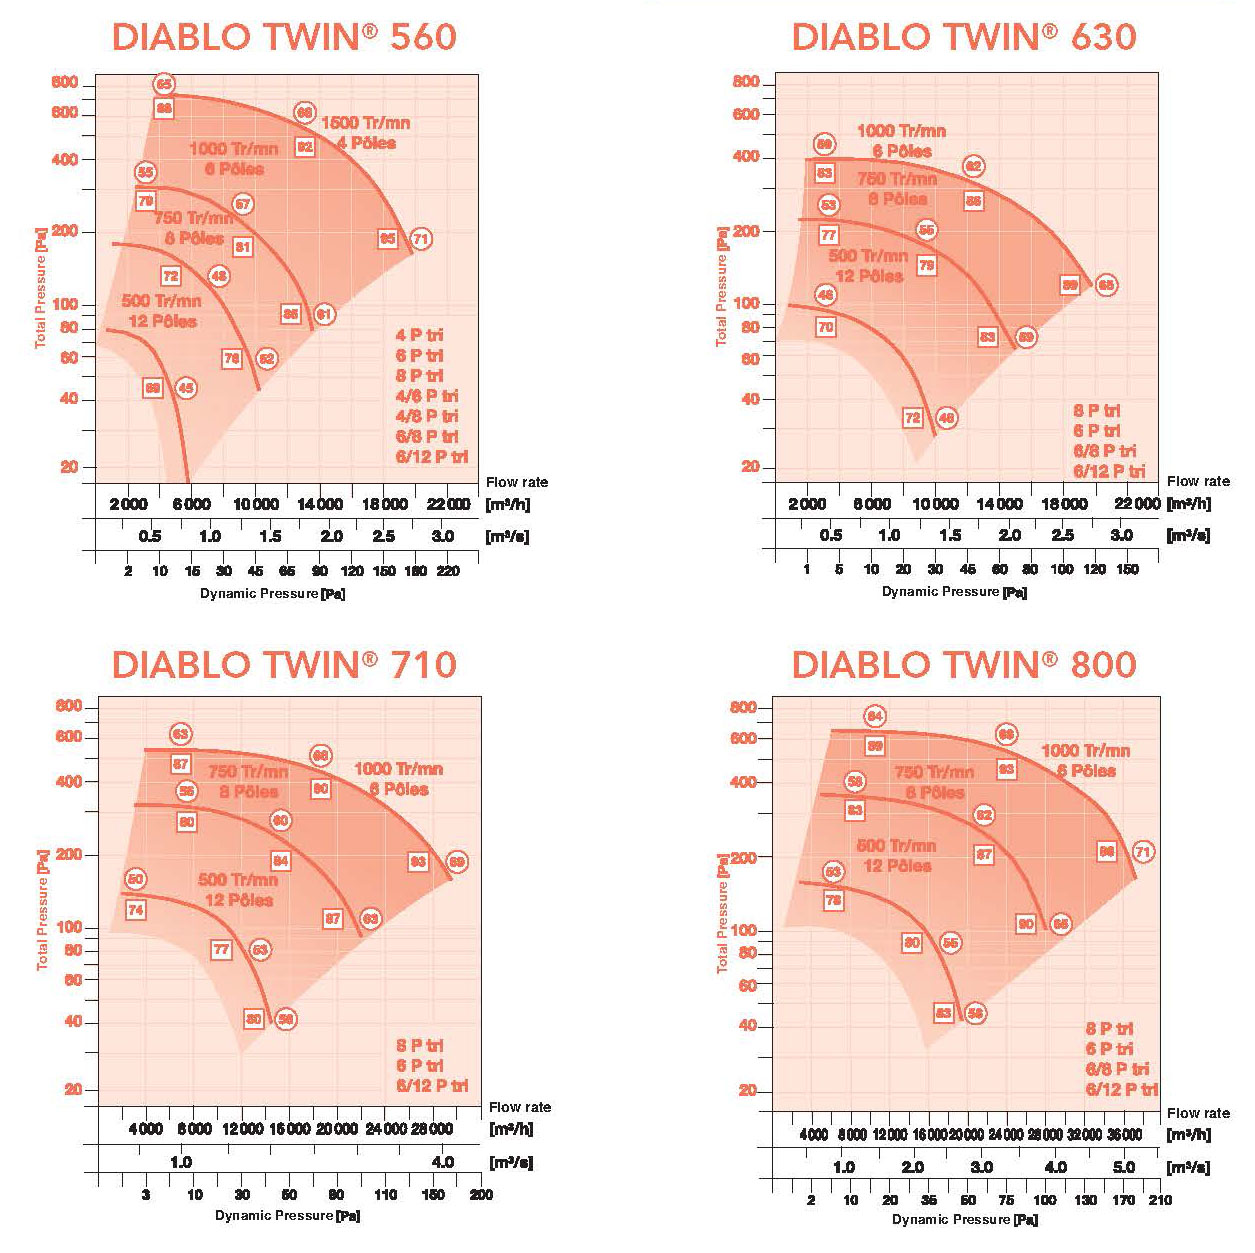 Caladair Diablo Twin Air Flow Rates